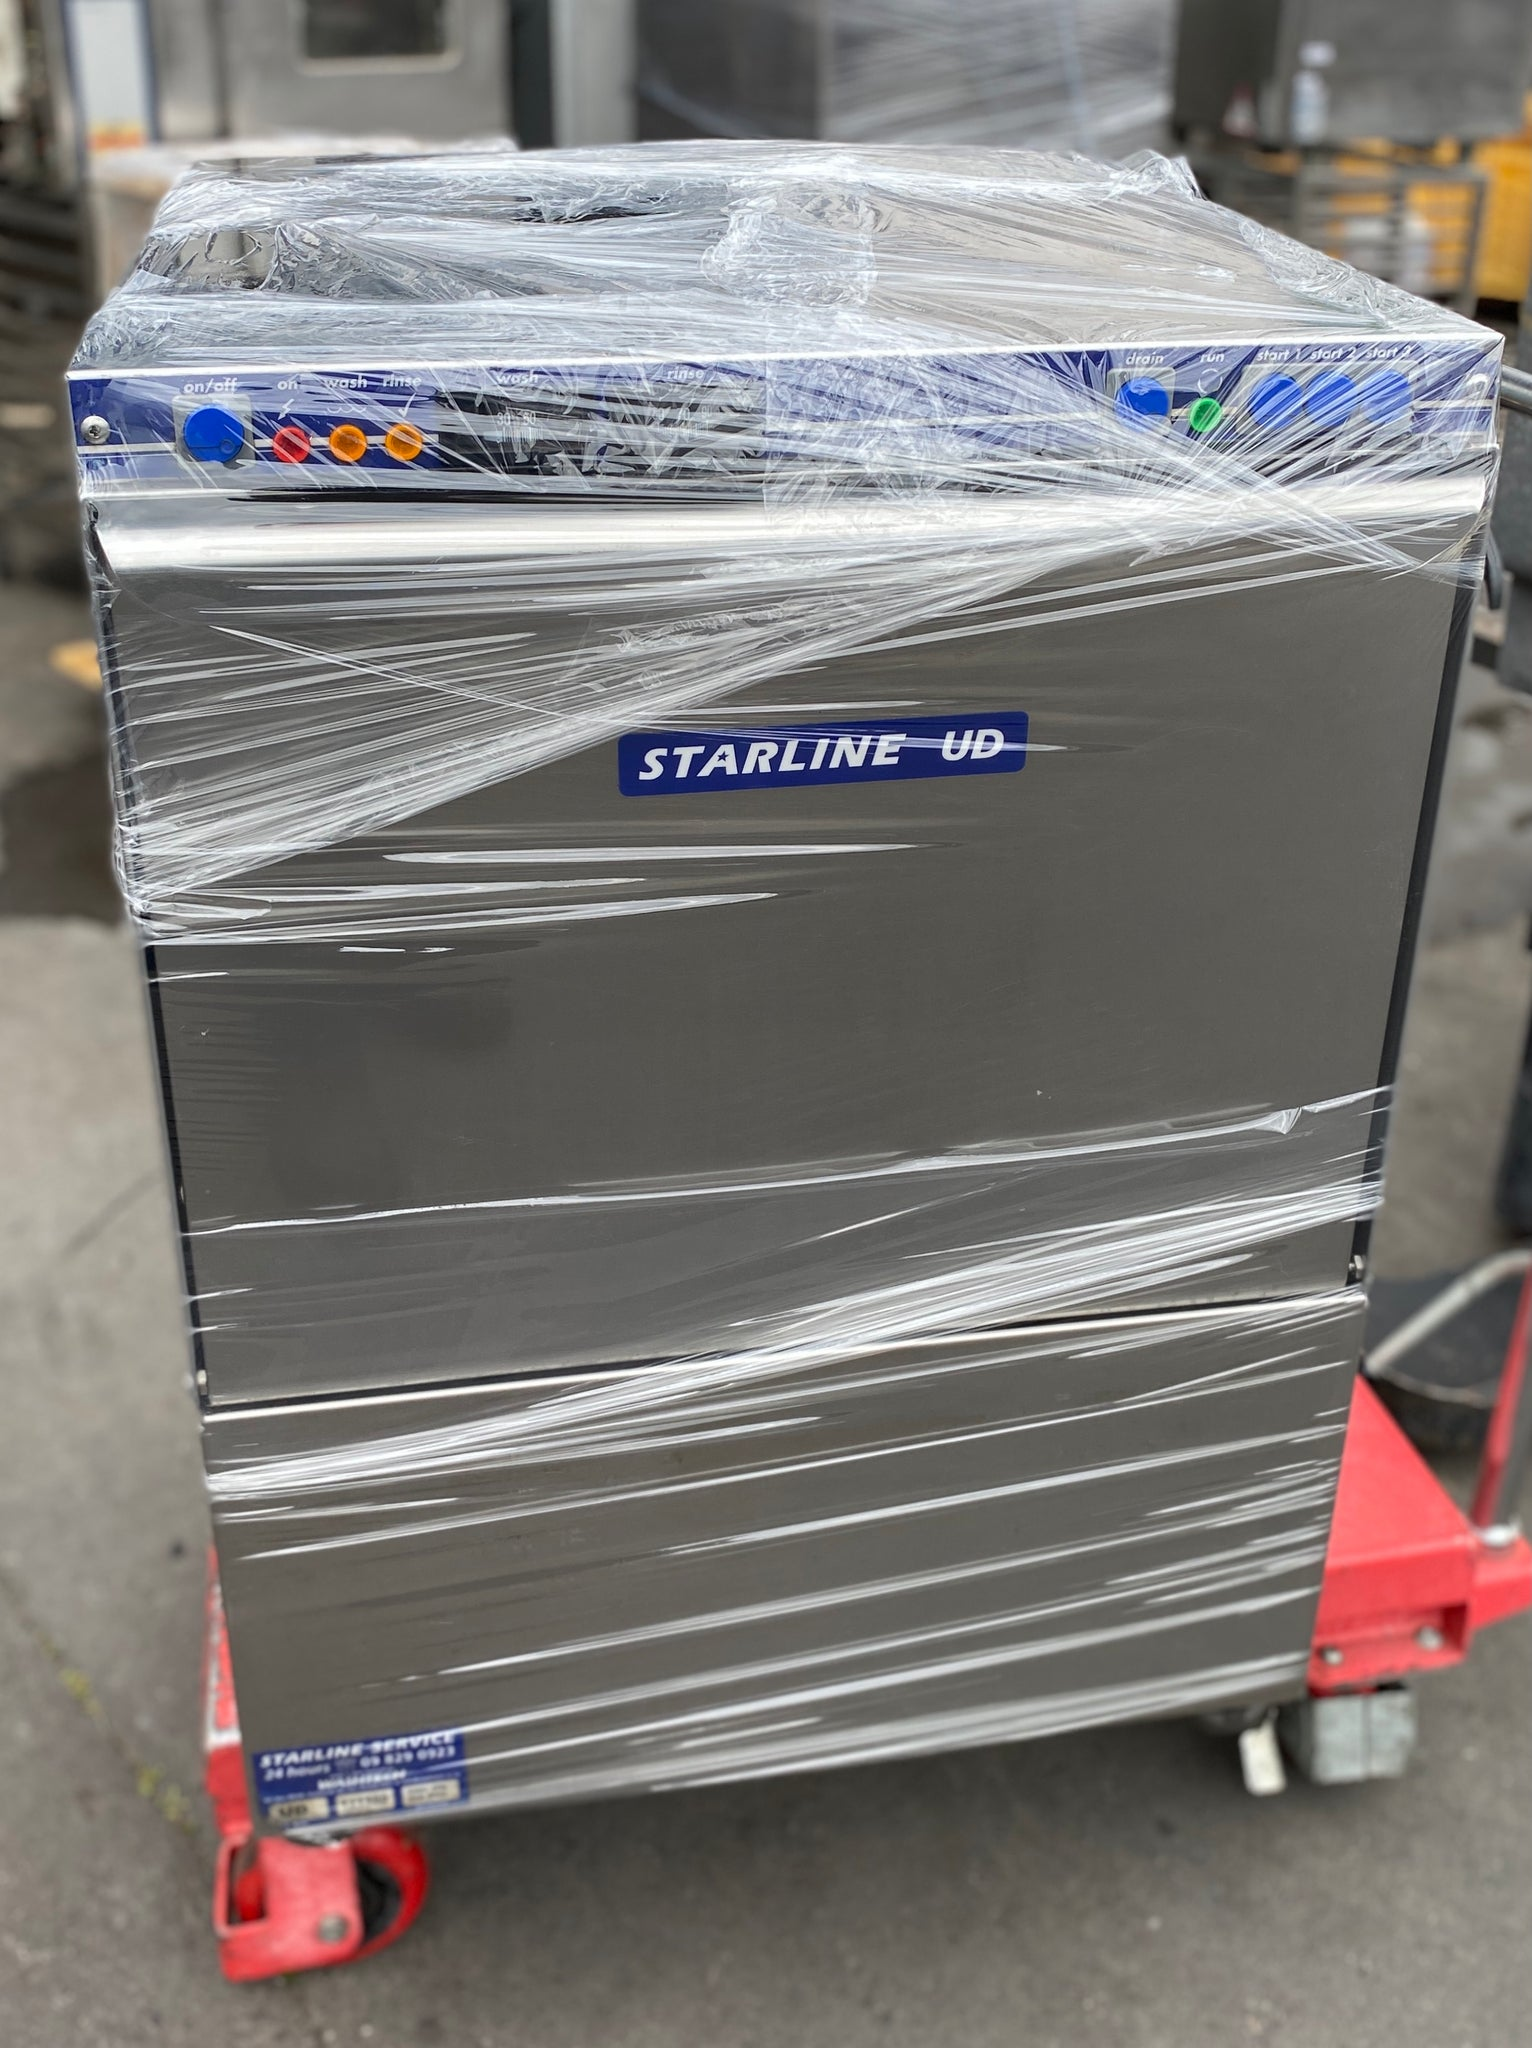 APS407 Starline UD Commercial dishwasher with Warranty